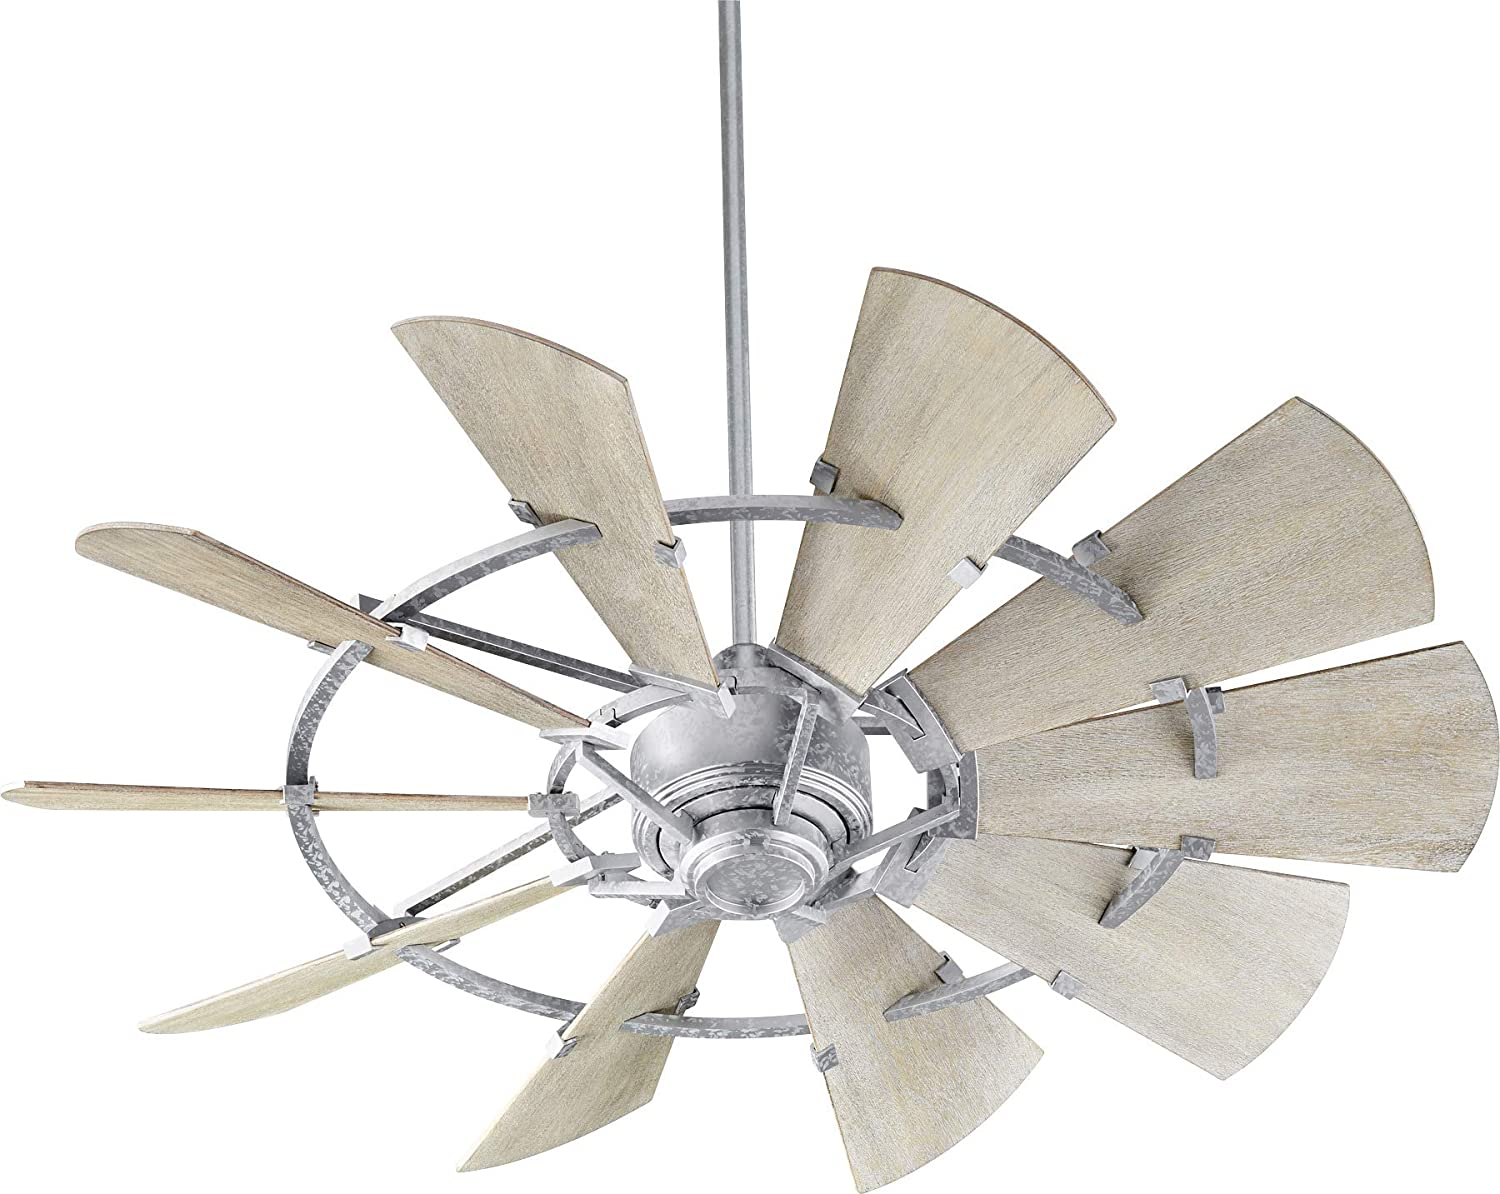 "Quorum 95210-9 Windmill 52"" Ceiling Fan with Wall Control, Galvanized"